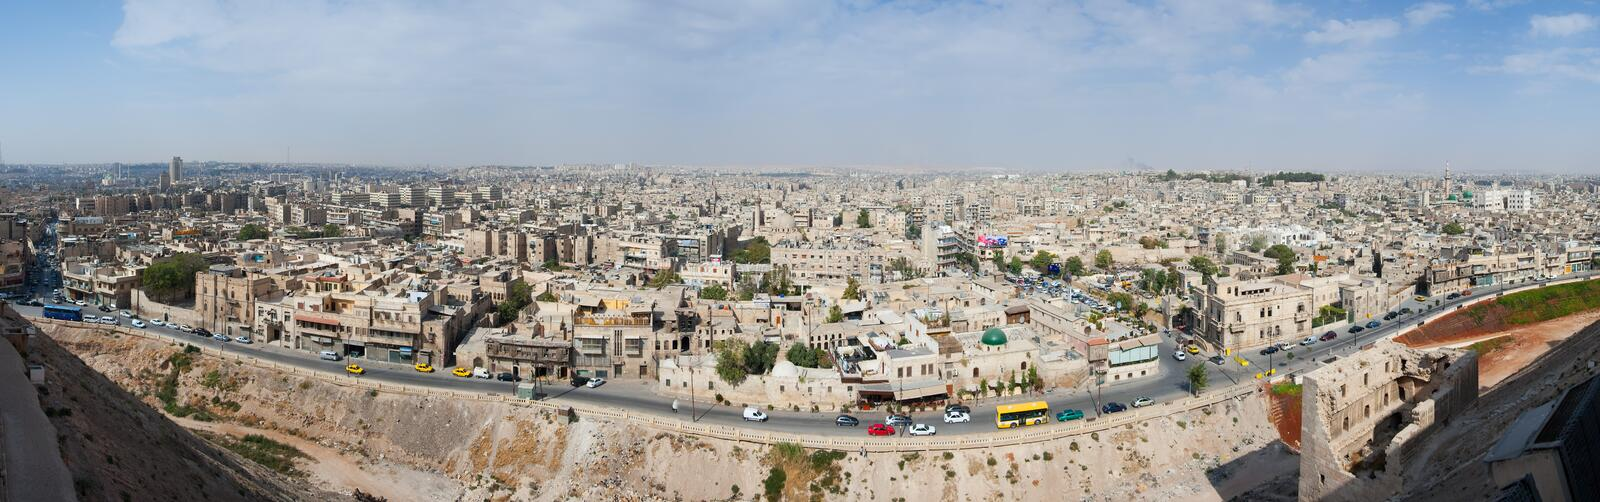 Panoramique d'Aleppo photo stock